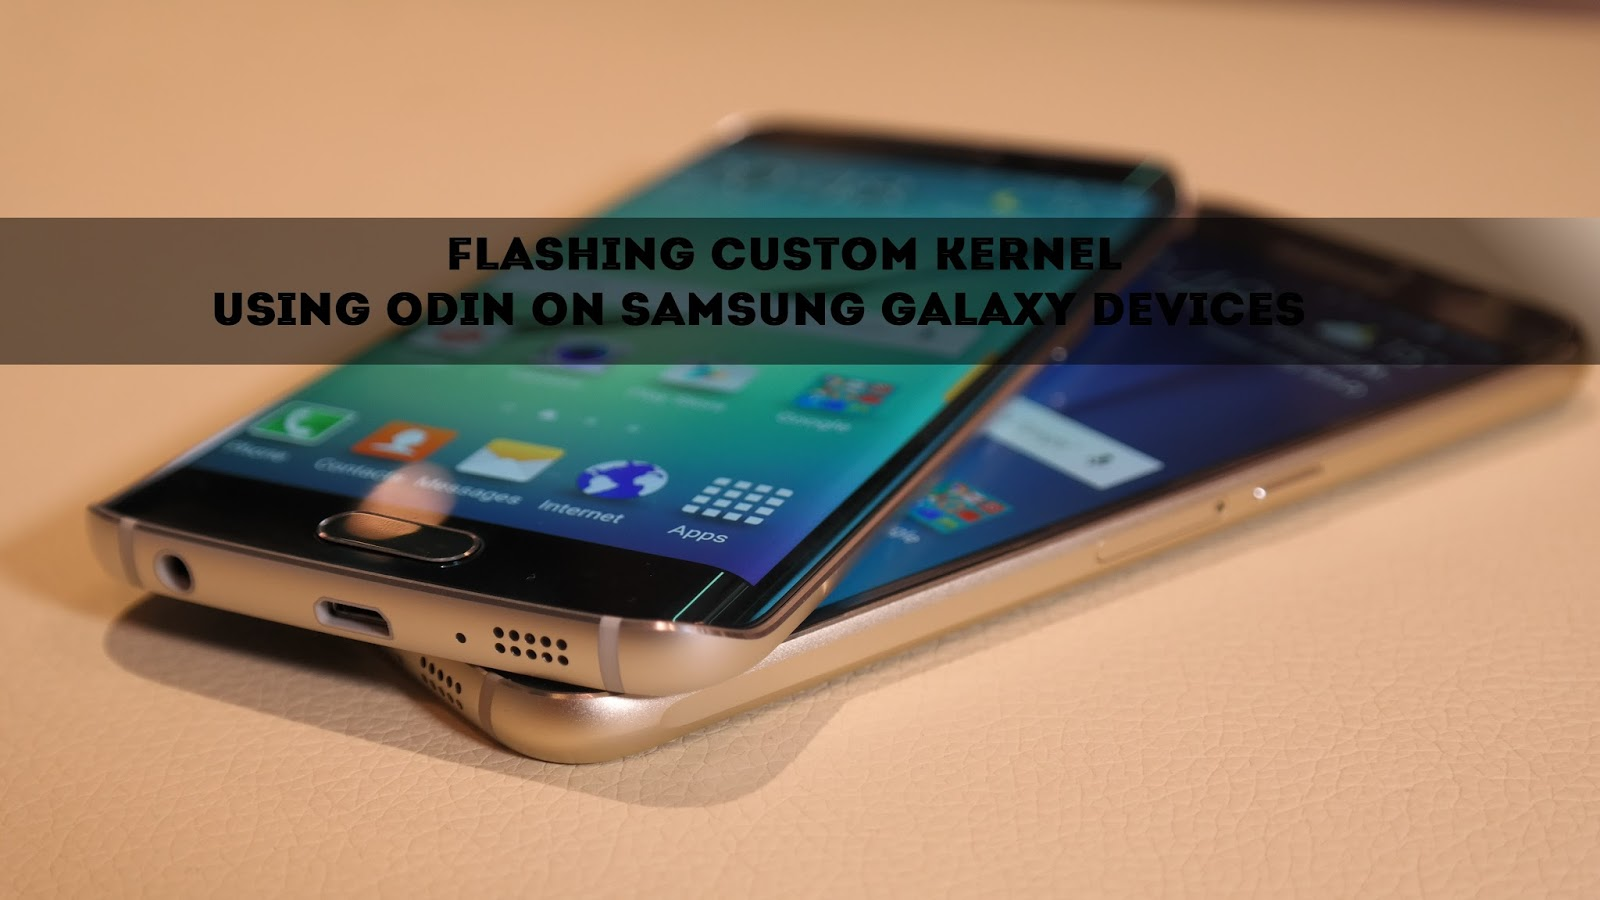 How To Flash/Install A Custom Kernel Using Odin On Samsung